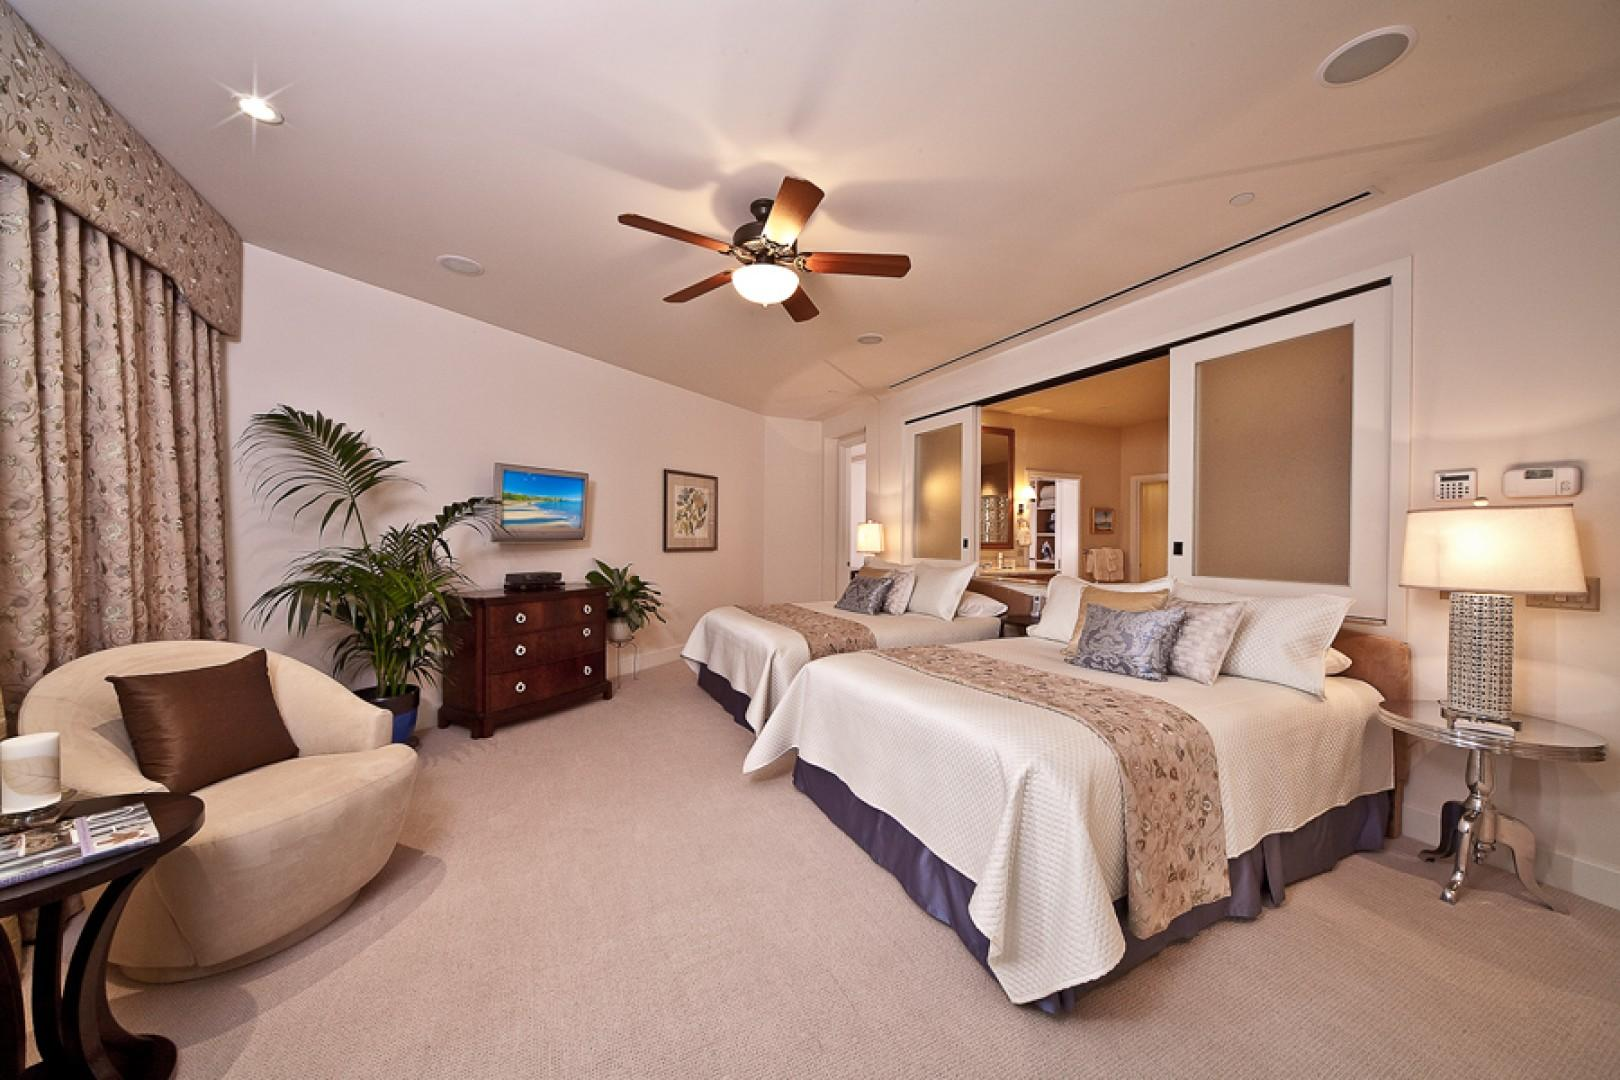 Ocean View Master Bedroom - Bedding changed to 1 King Bed